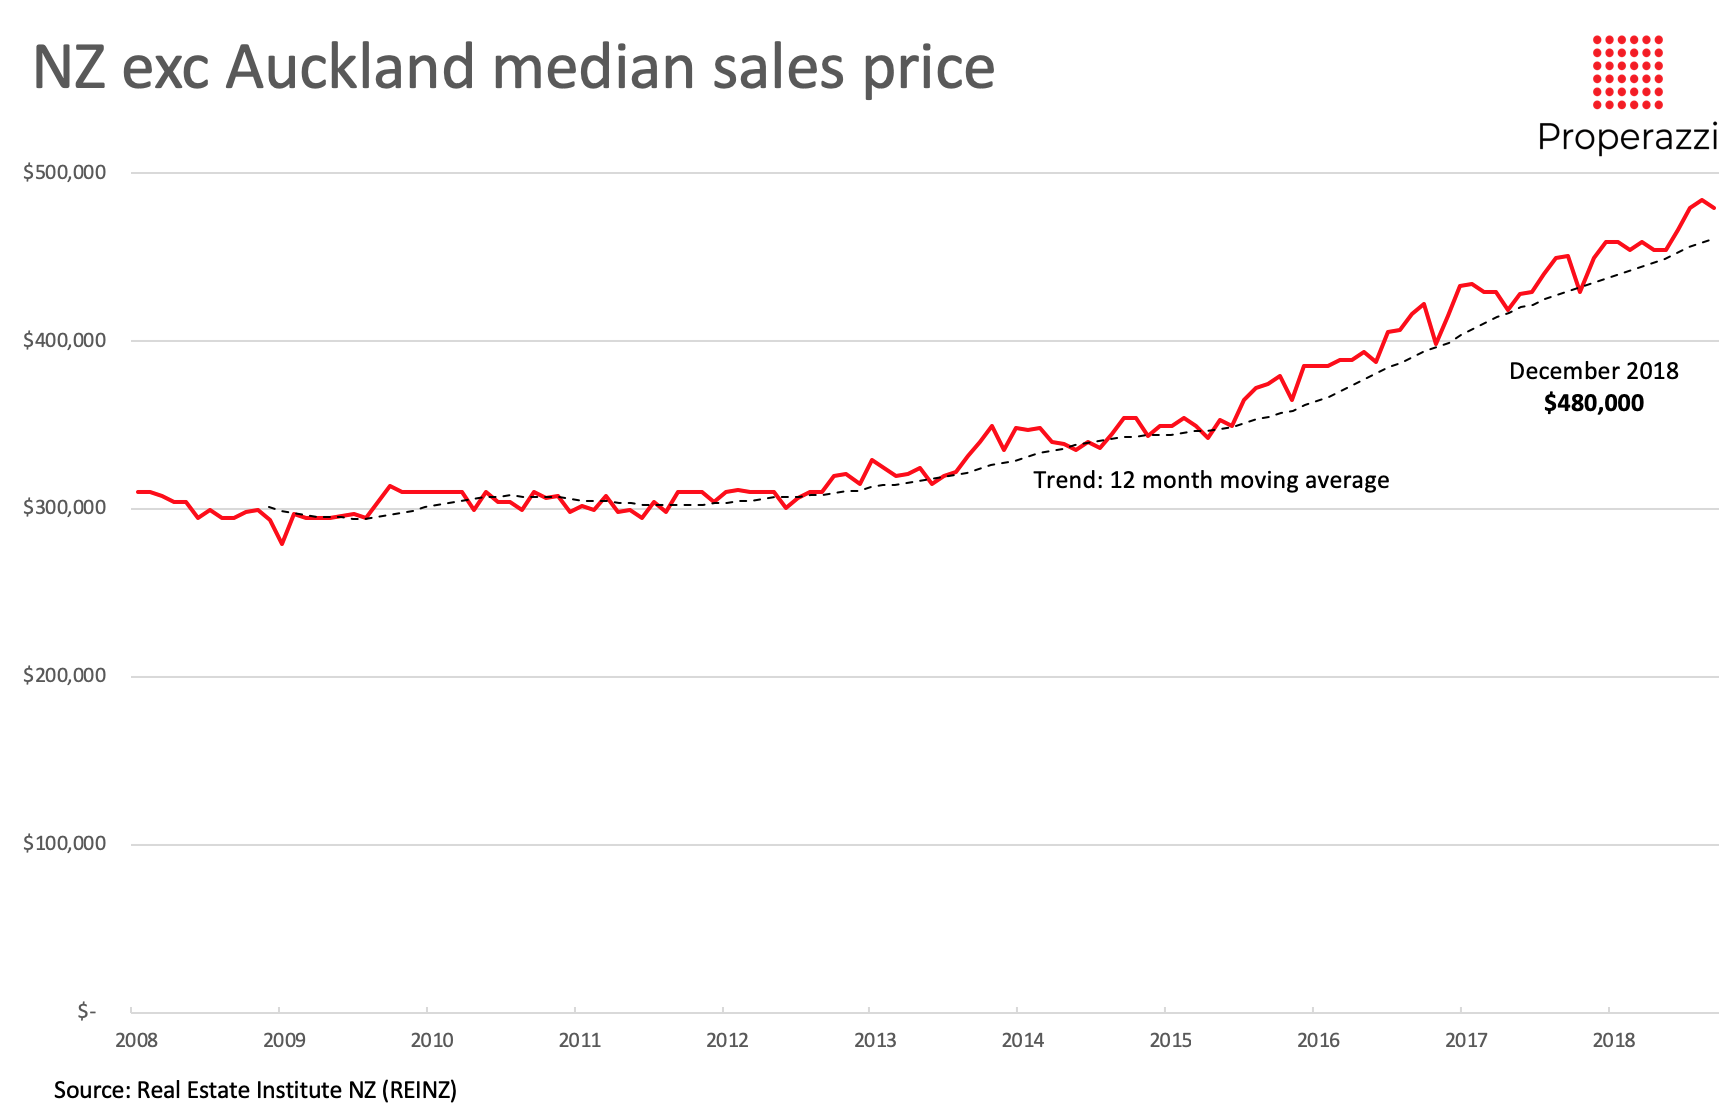 Median sale price for property outside of Auckland 2008 to 2018